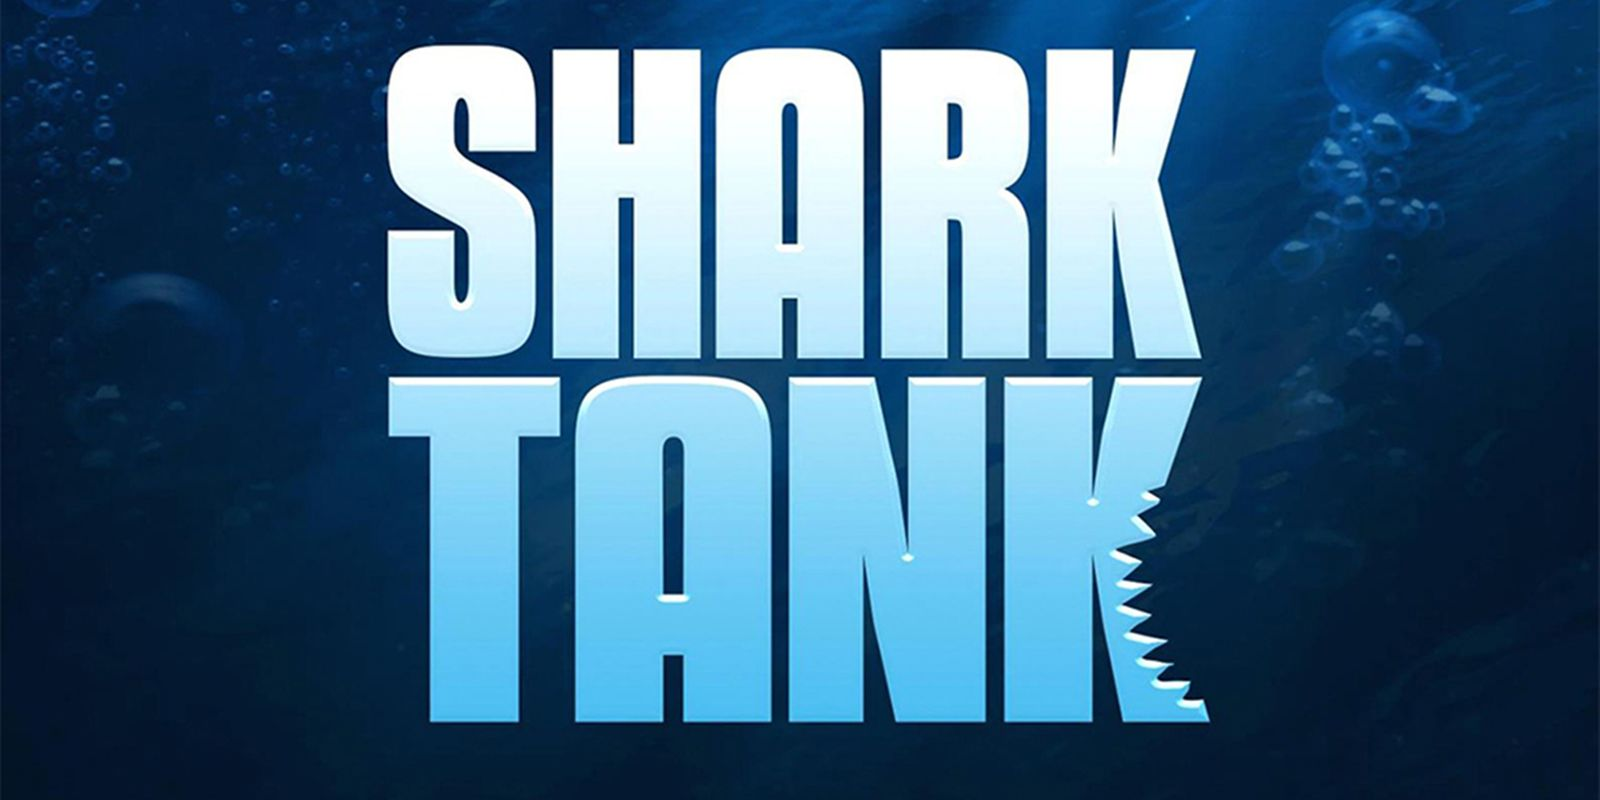 shark-tank-crop-rev.jpg